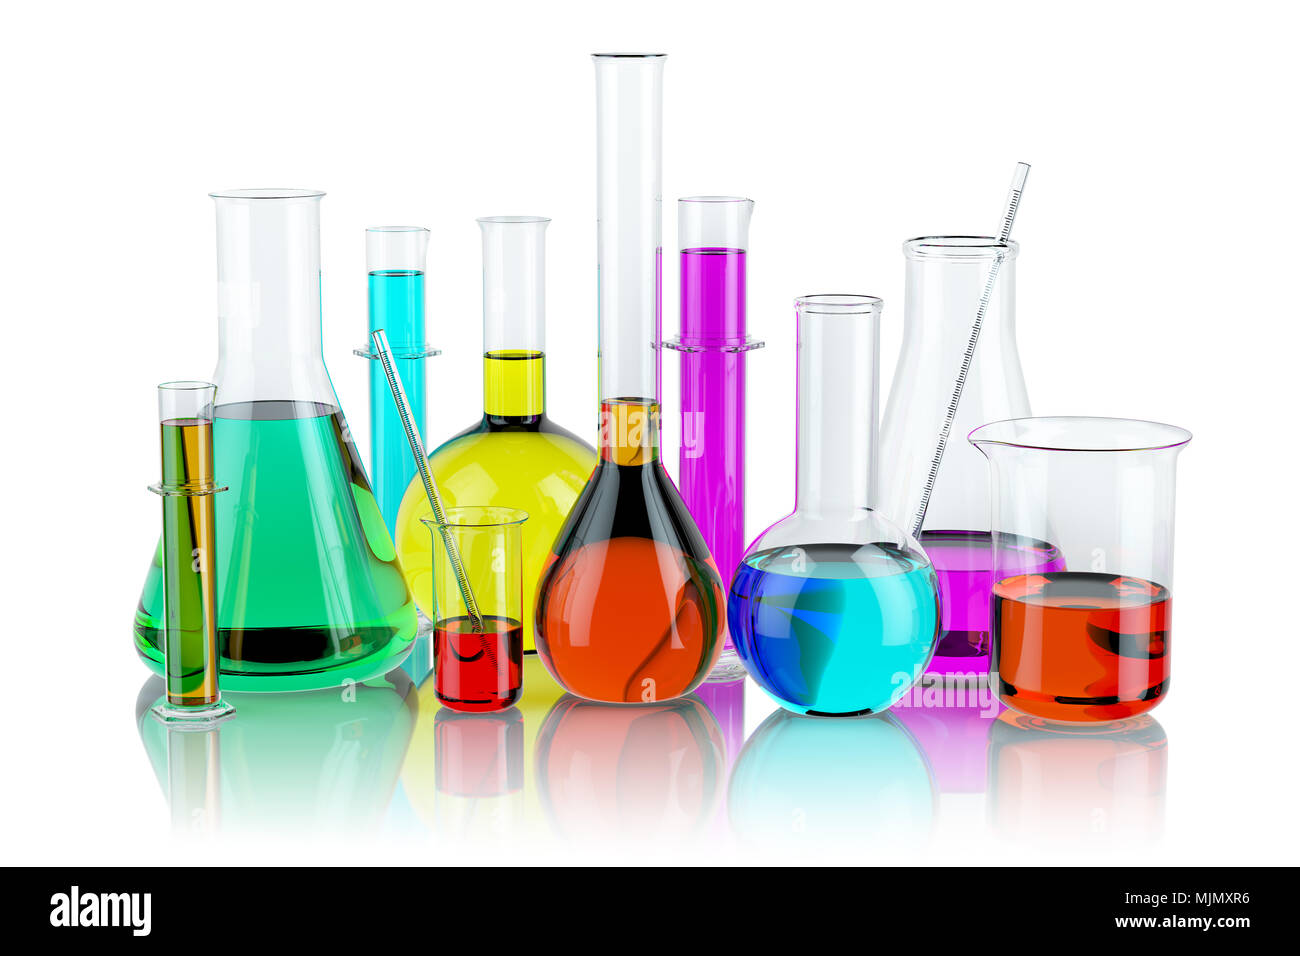 Laboratory Glassware Test Glass Flasks And Tubes With Solution Isolated On White Background